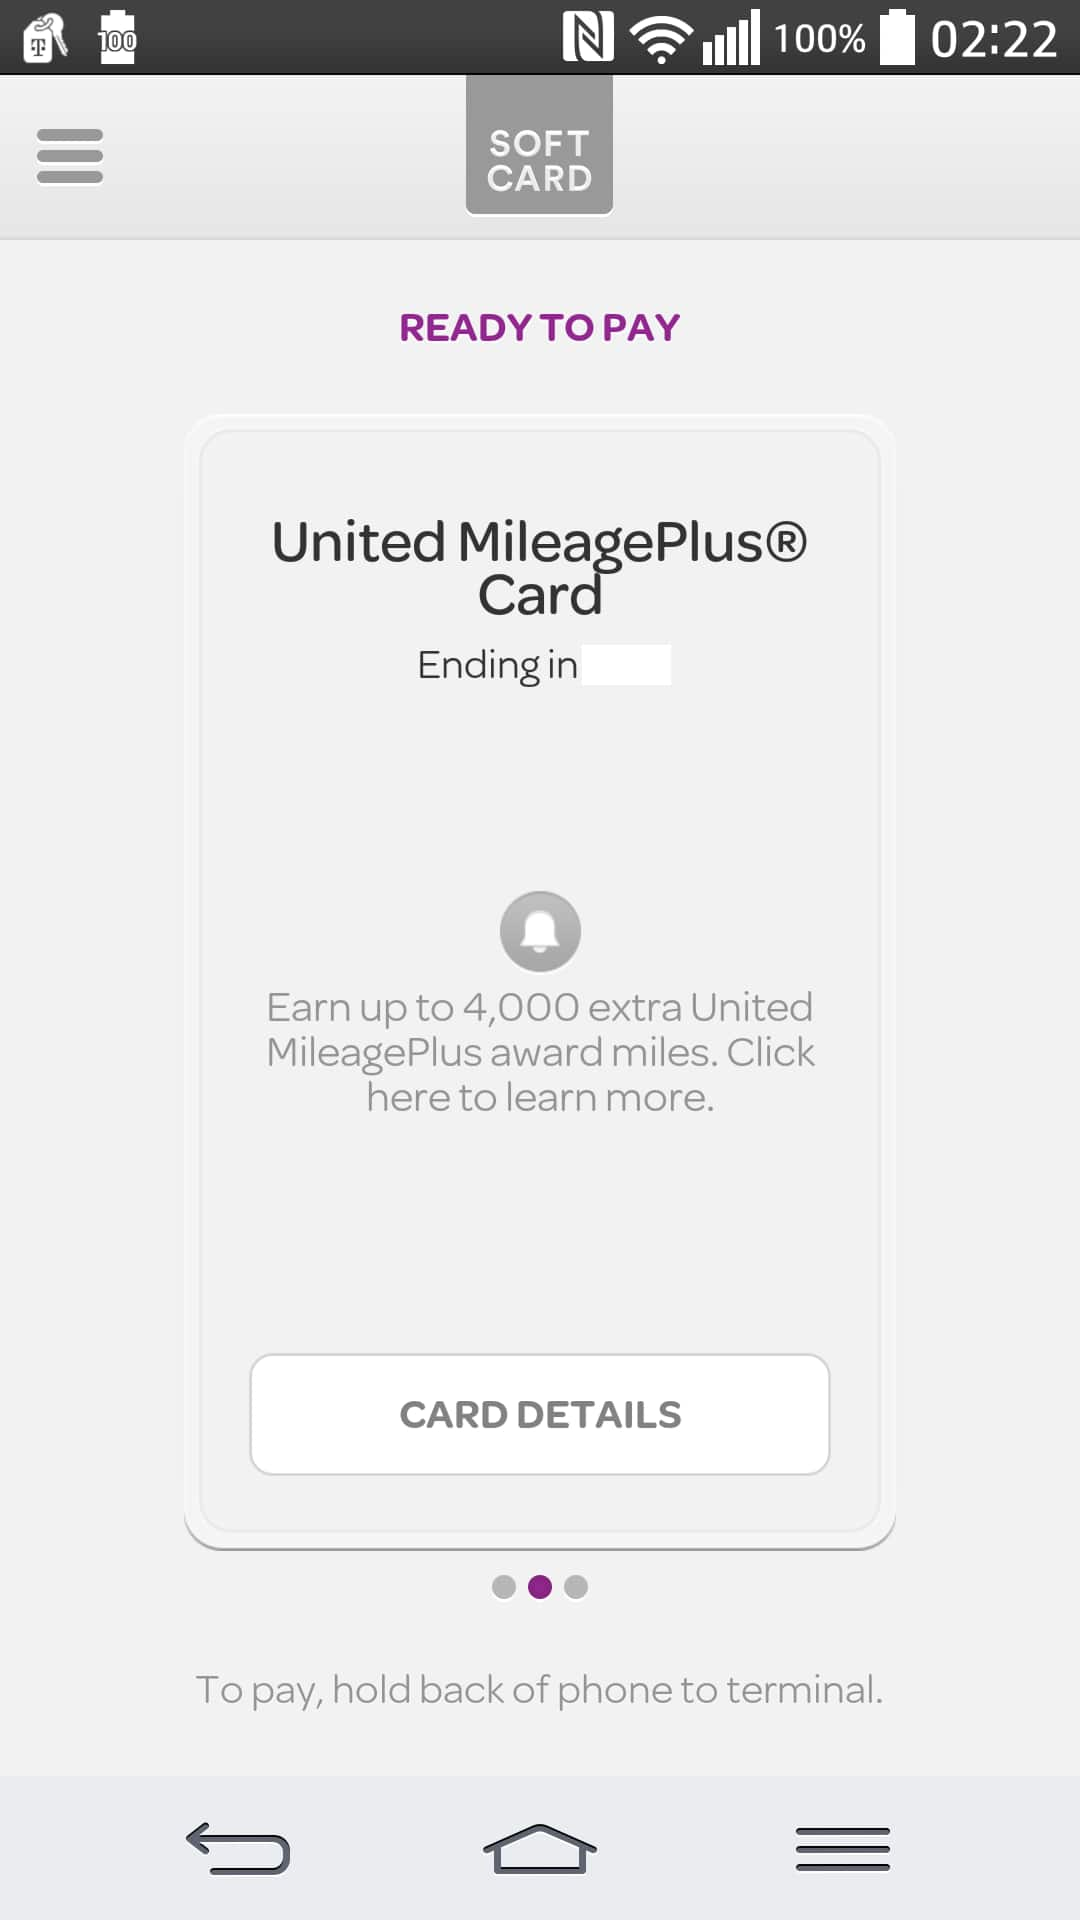 4,000 United miles from Softcard after linking and use Chase United Explore/Club card.